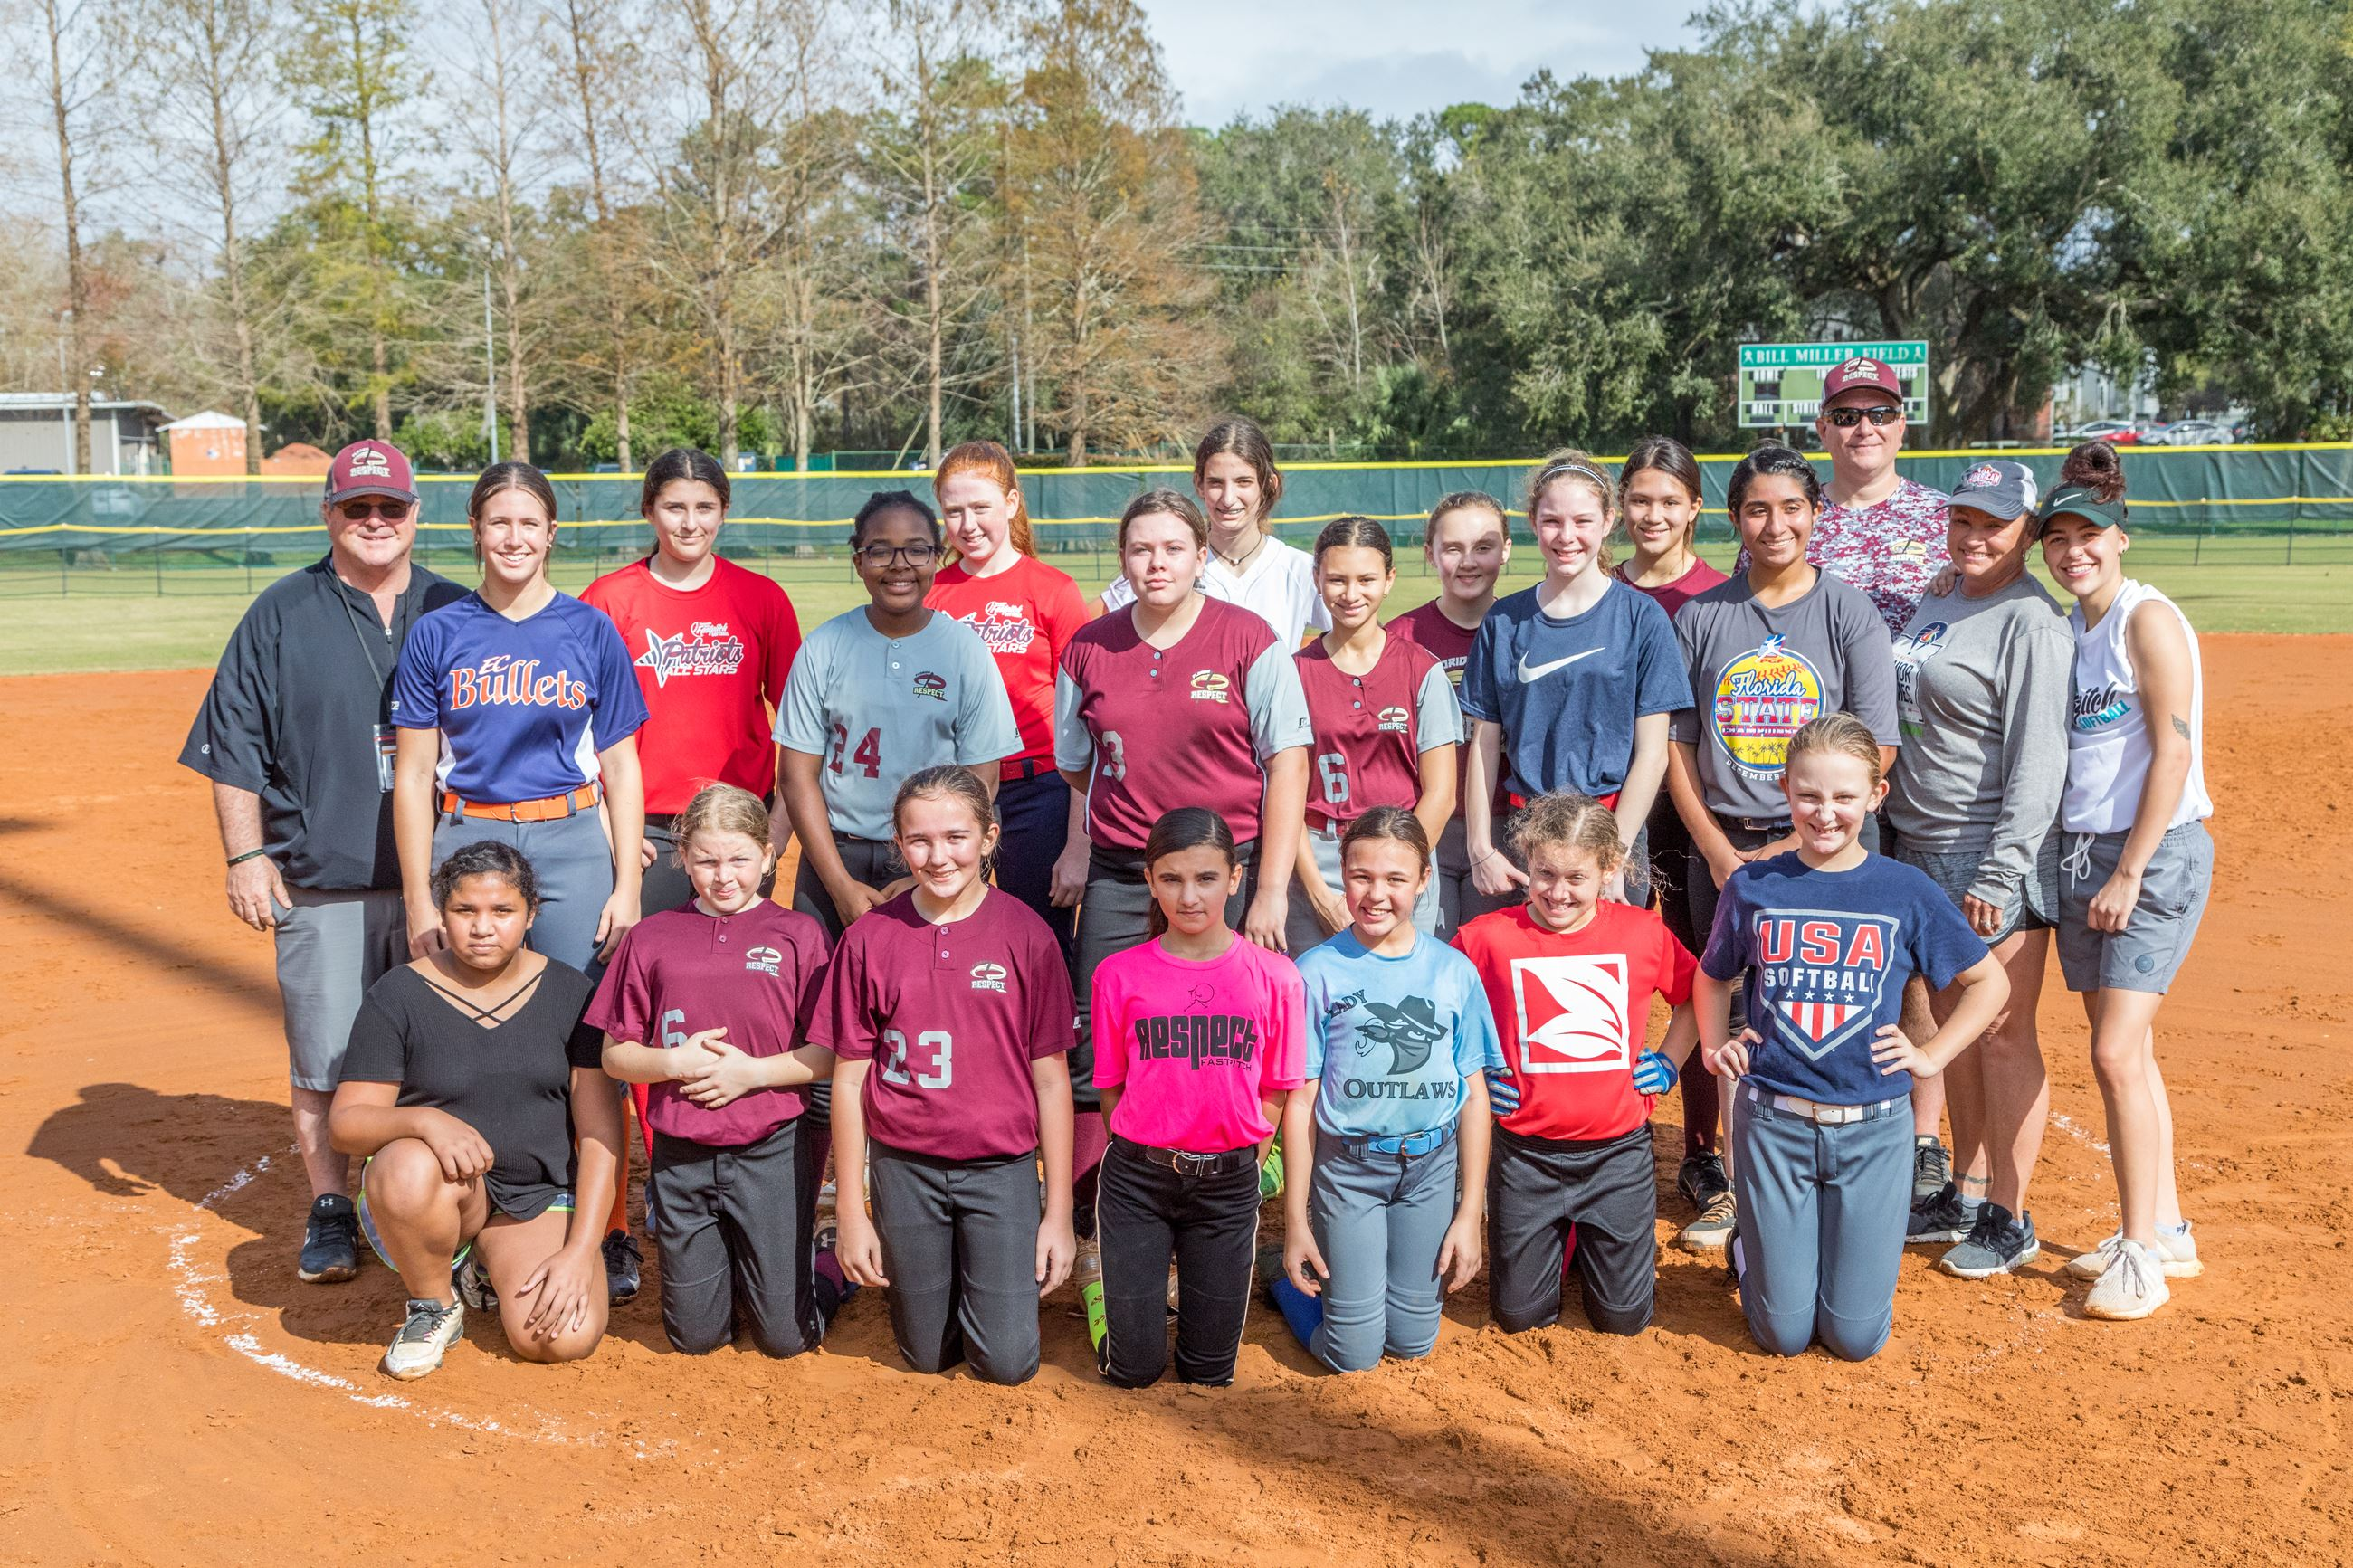 Group Photo of Girls Softball Players and Coaches